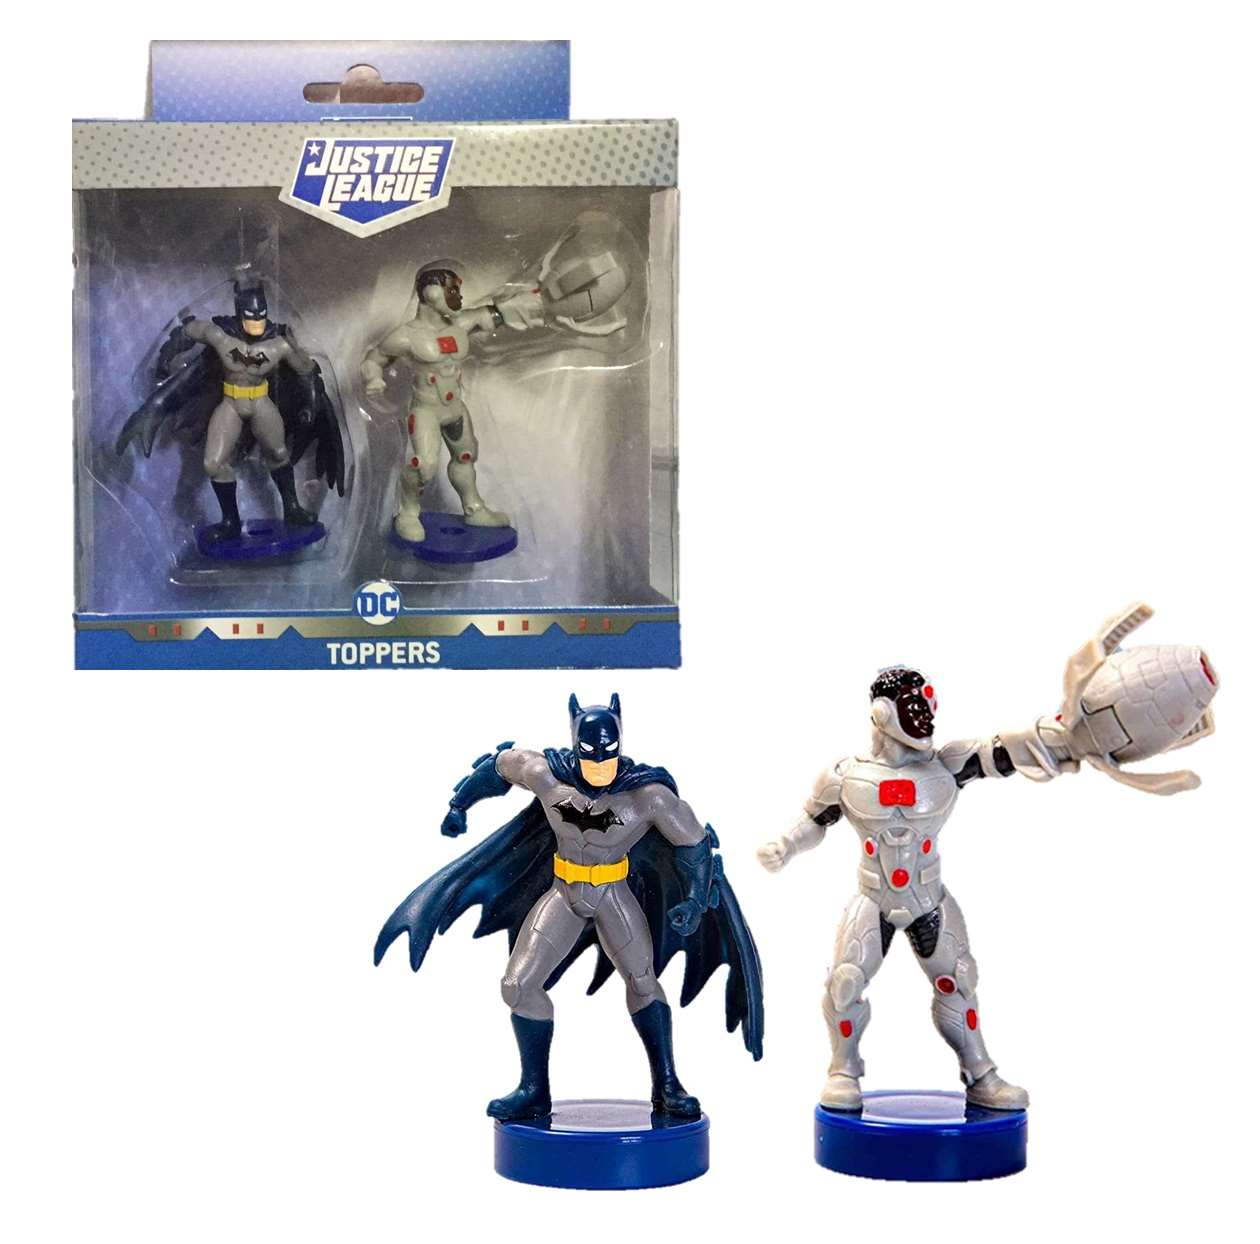 Pack 2 Figurillas Batman And Cyborg Toppers Justice League